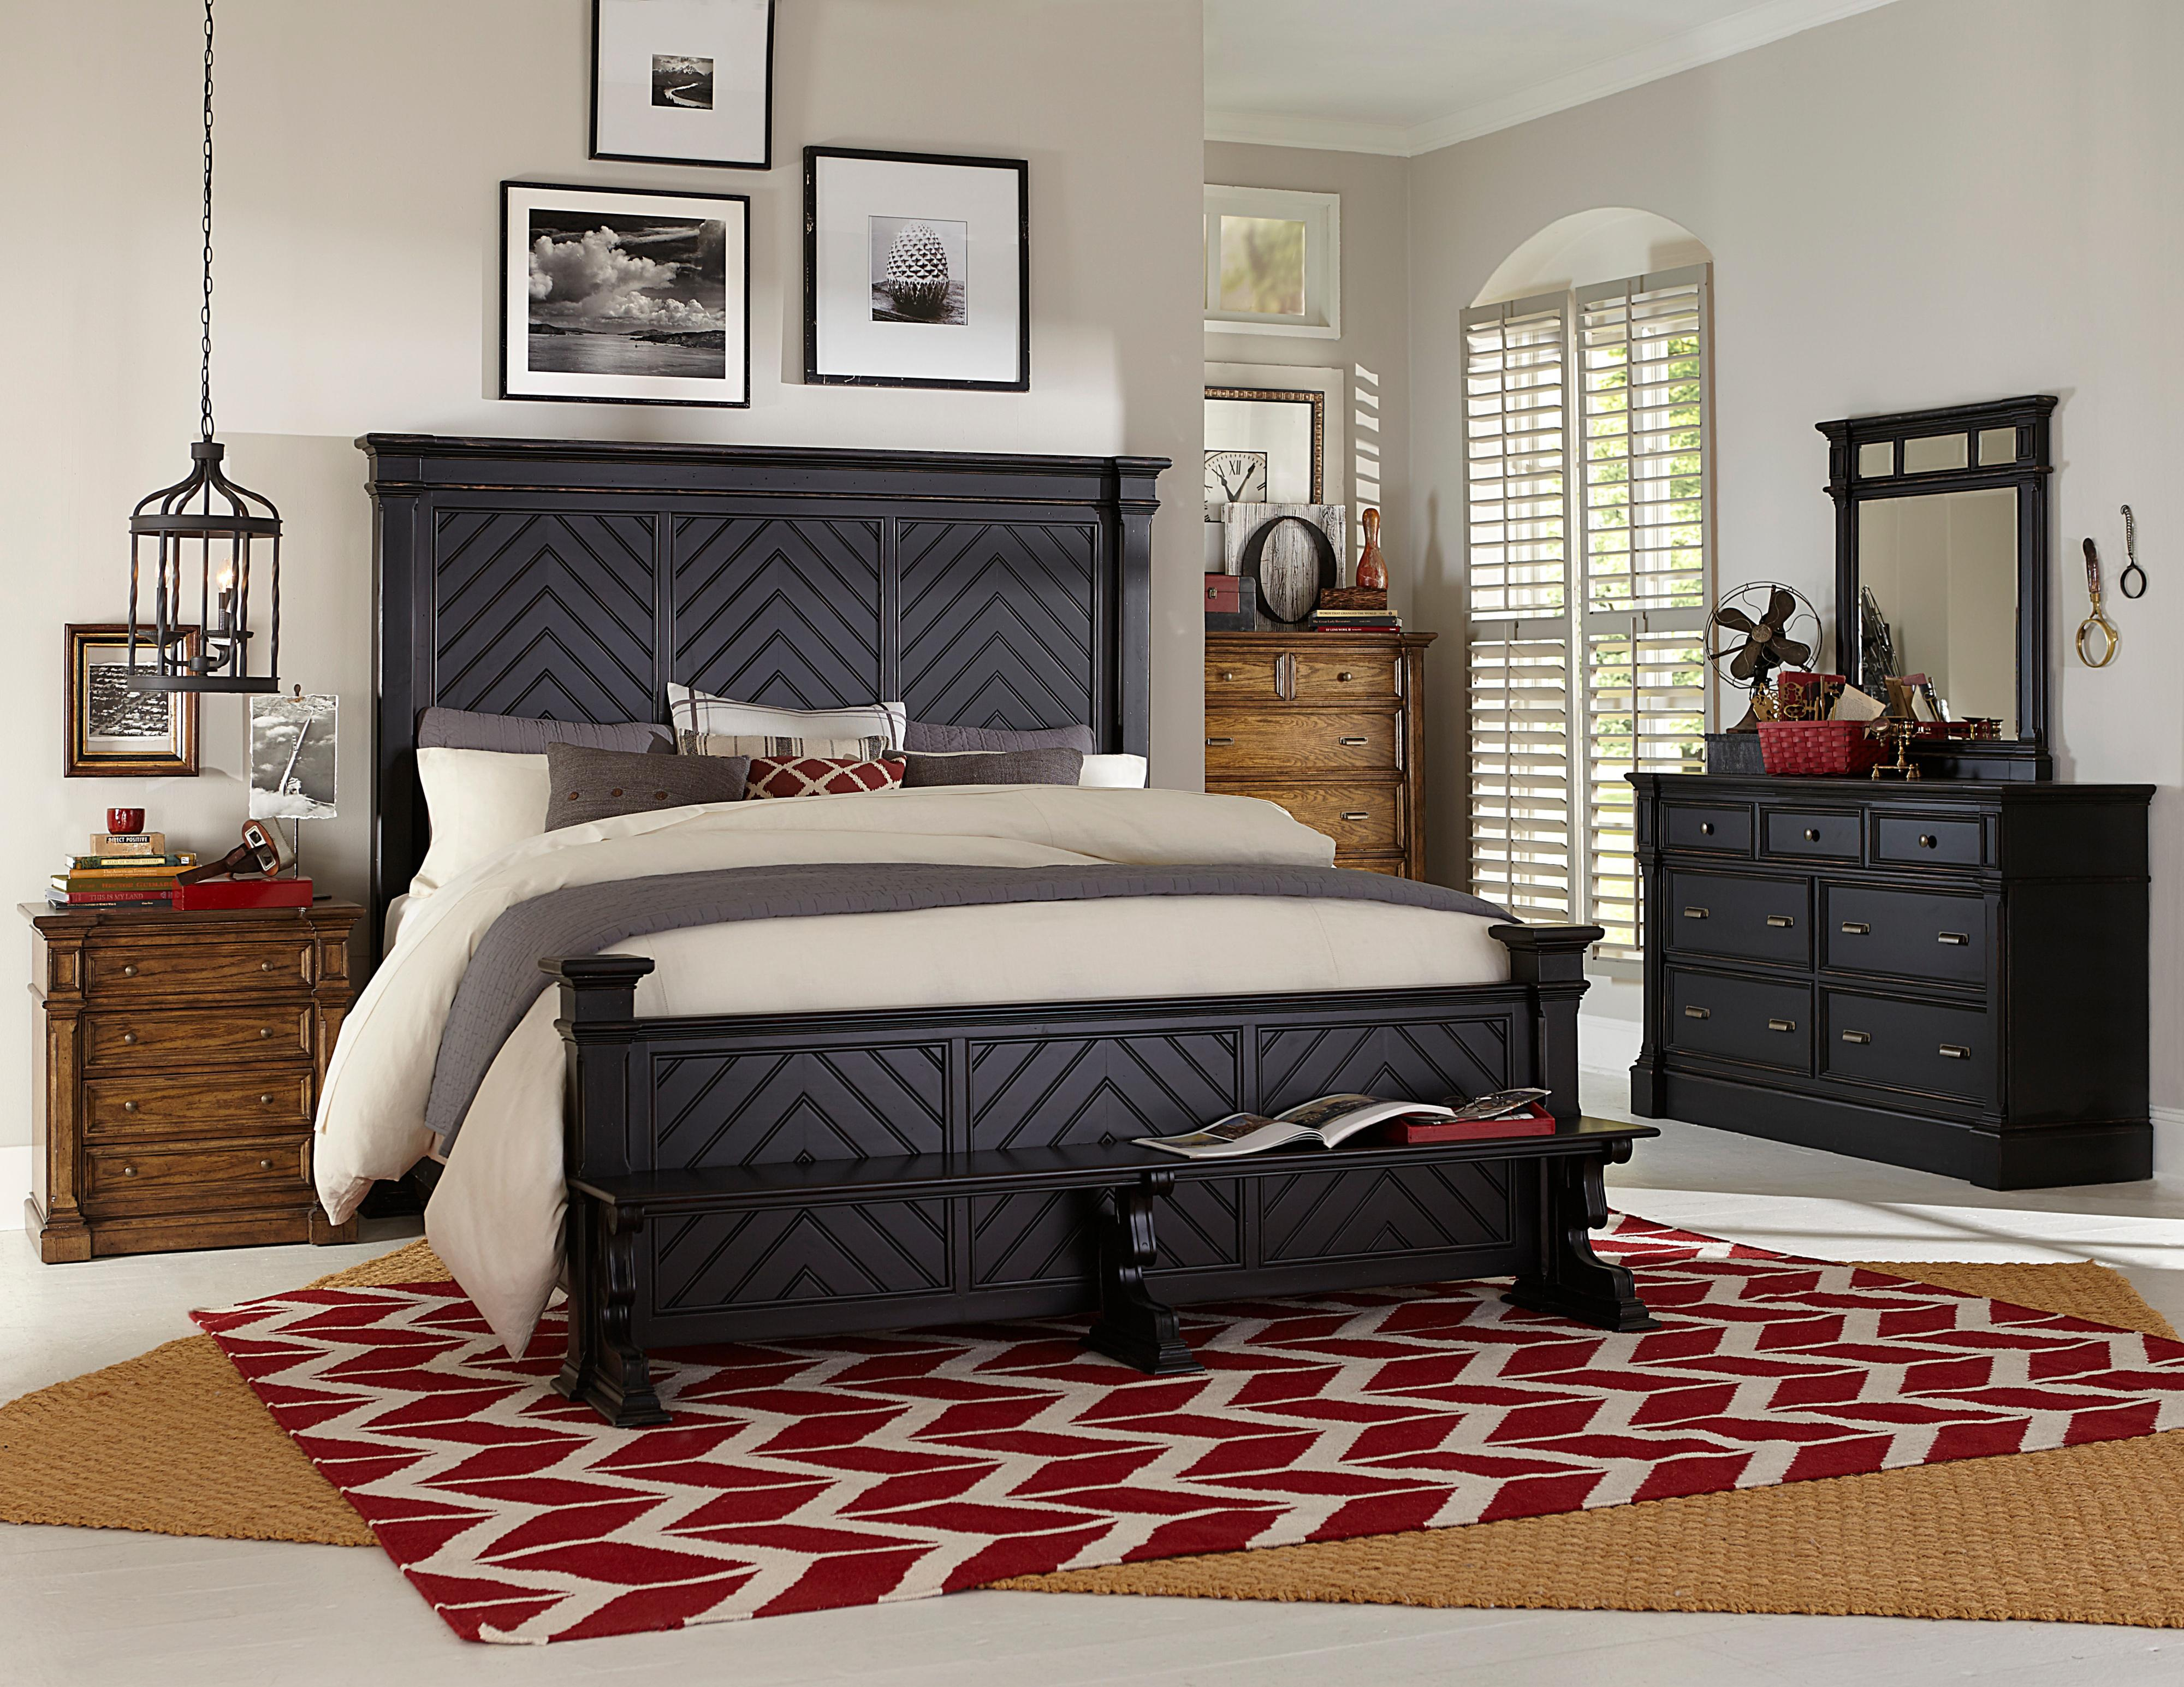 King Chevron Bed. King Chevron Bed with Benchseat Footboard by Broyhill Furniture